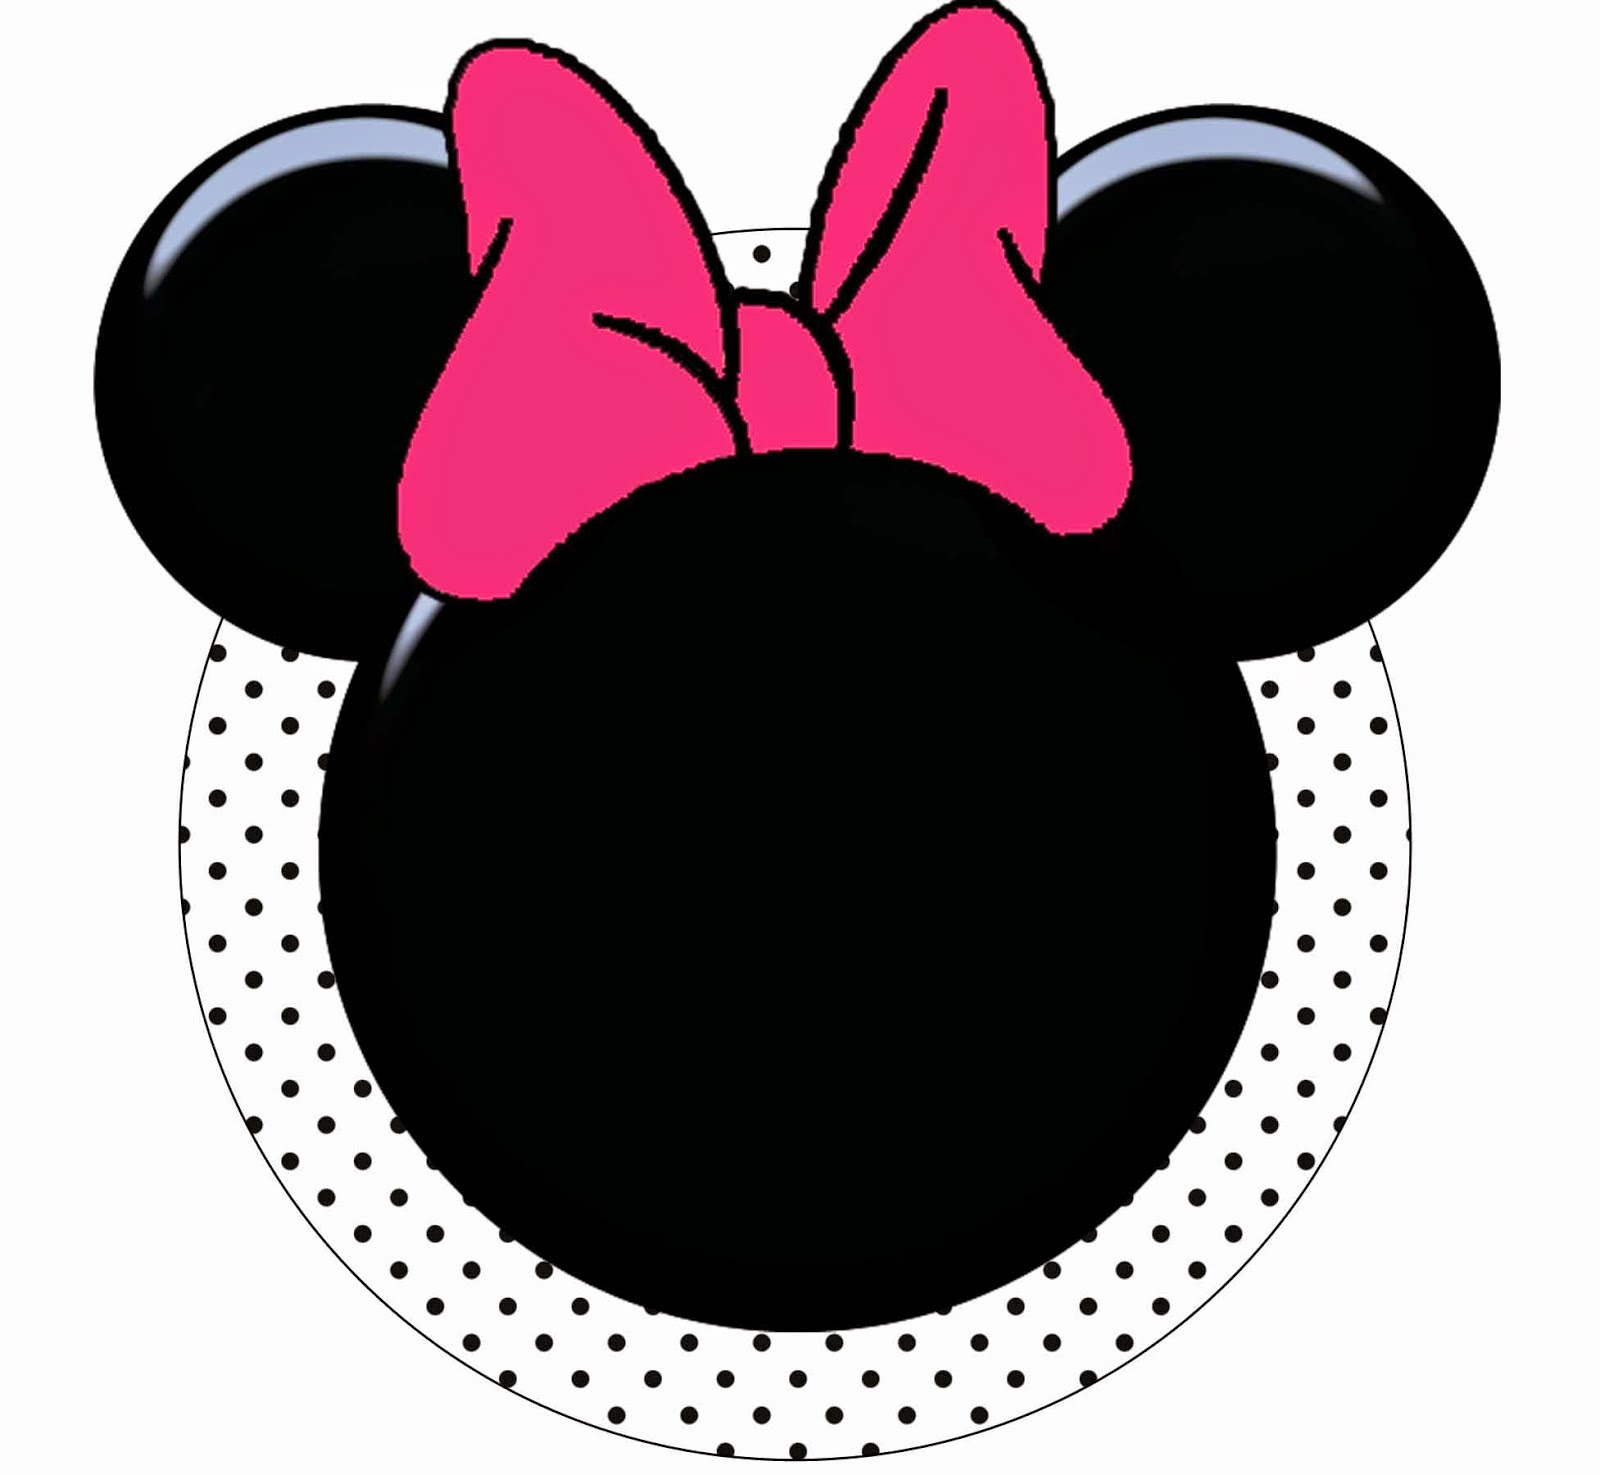 1600x1475 Funny Pink Minnie Mouse Free Printable Kit. Oh My Fiesta! In English